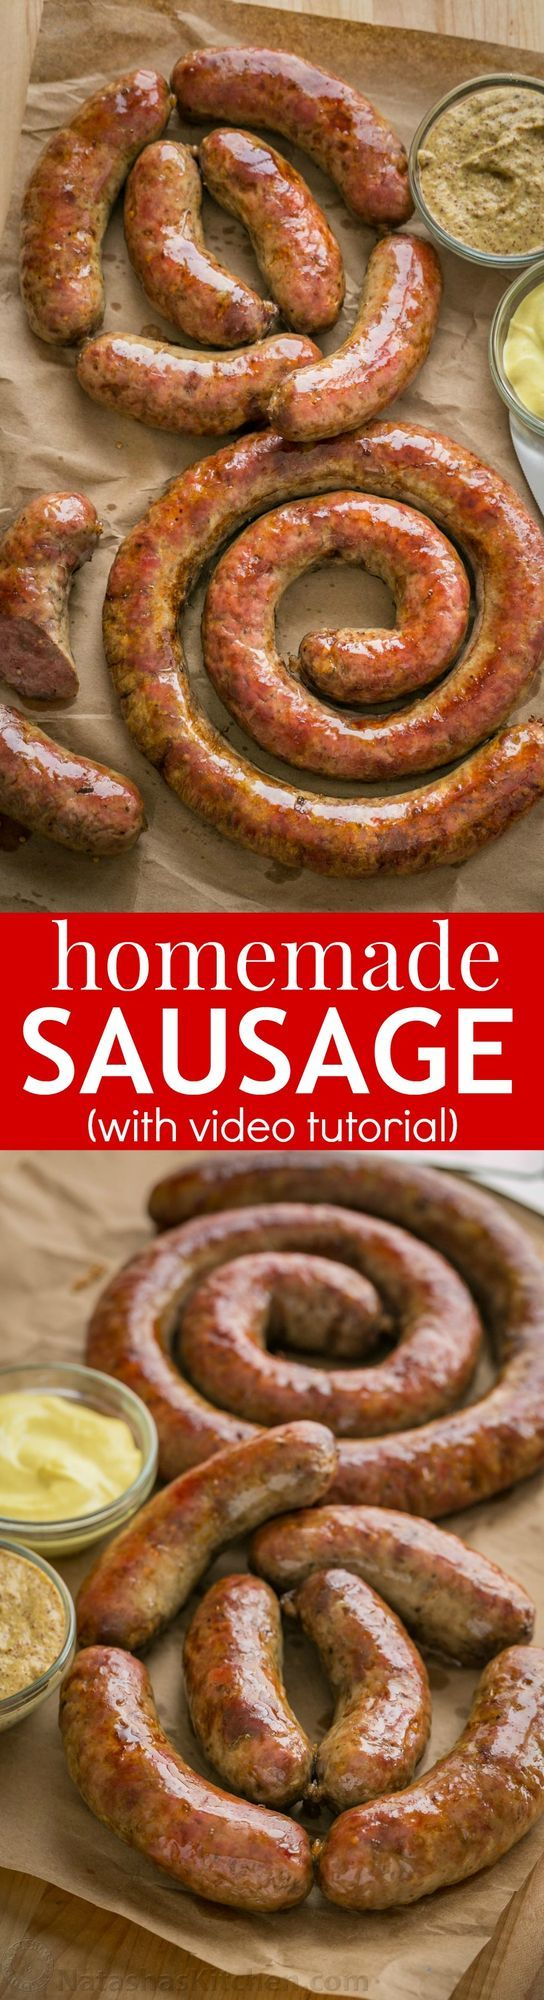 Homemade sausage is a great way to use less expensive cuts of meat to make something delicious, and homemade is best because you know exactly what went into it! We grew up eating homemade sausages and